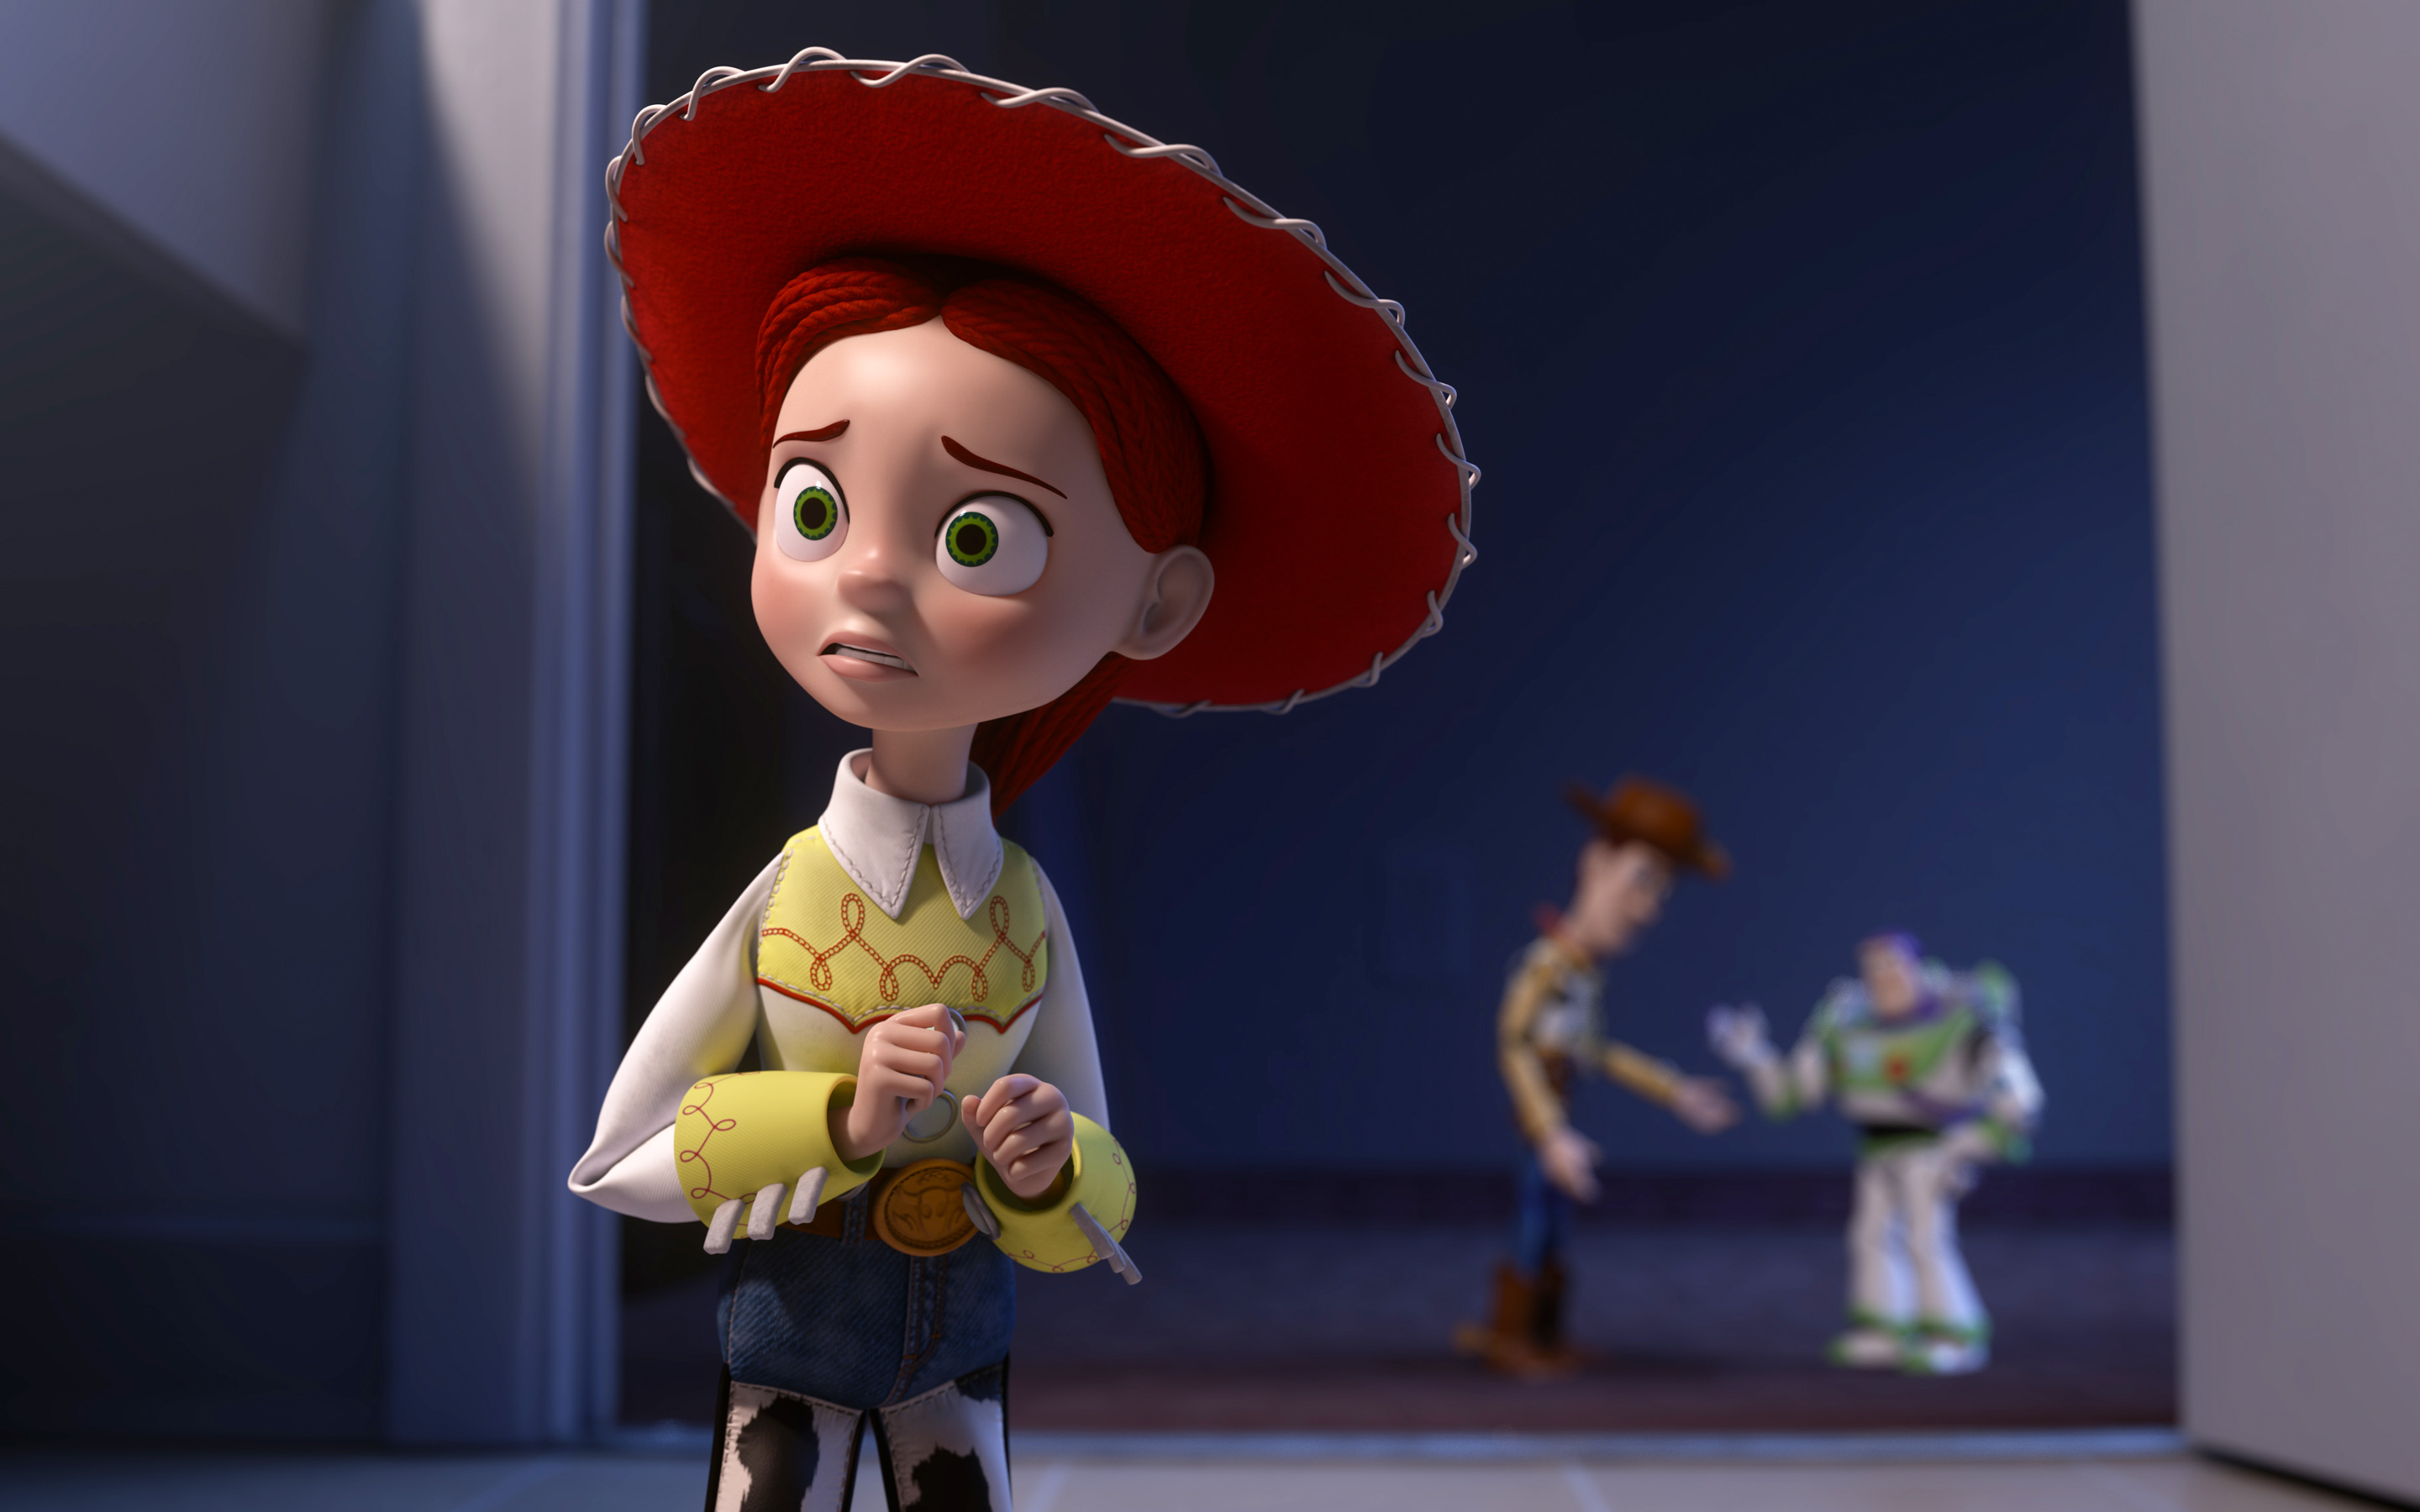 toy story jessie widescreen wallpaper 49243 2880x1800px